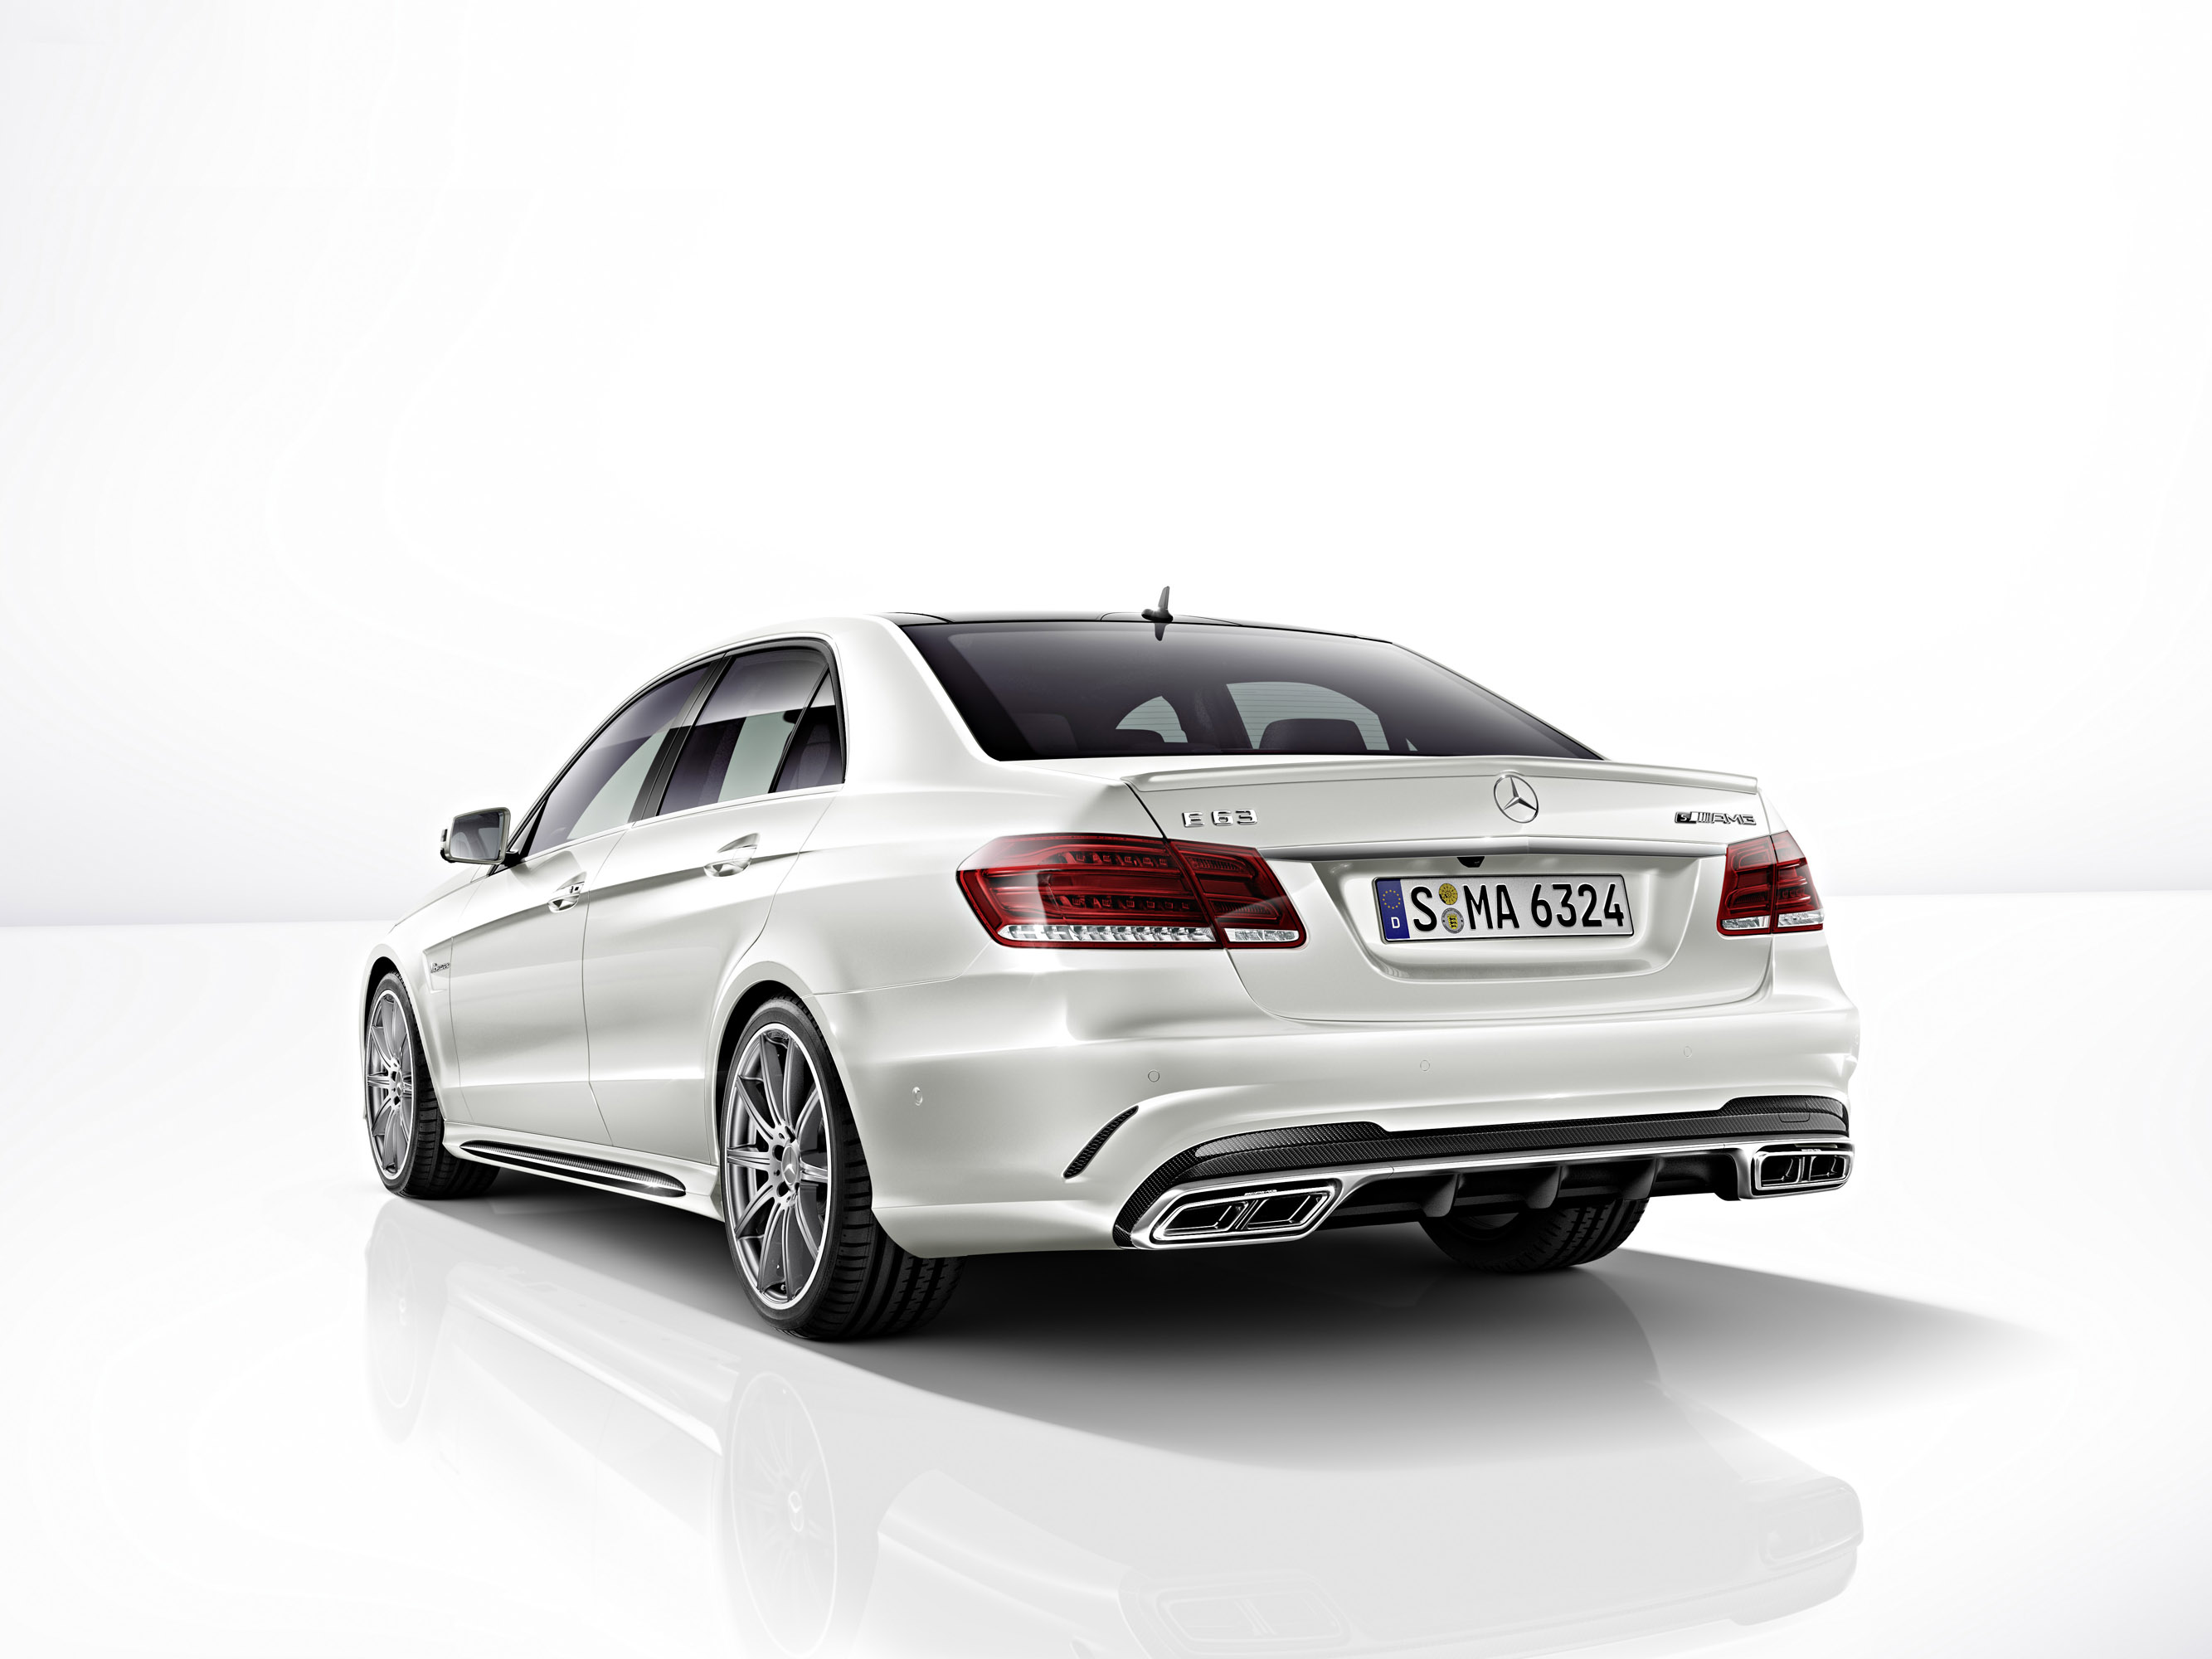 2013 mercedes benz e 63 amg s 585hp and 800 nm. Black Bedroom Furniture Sets. Home Design Ideas